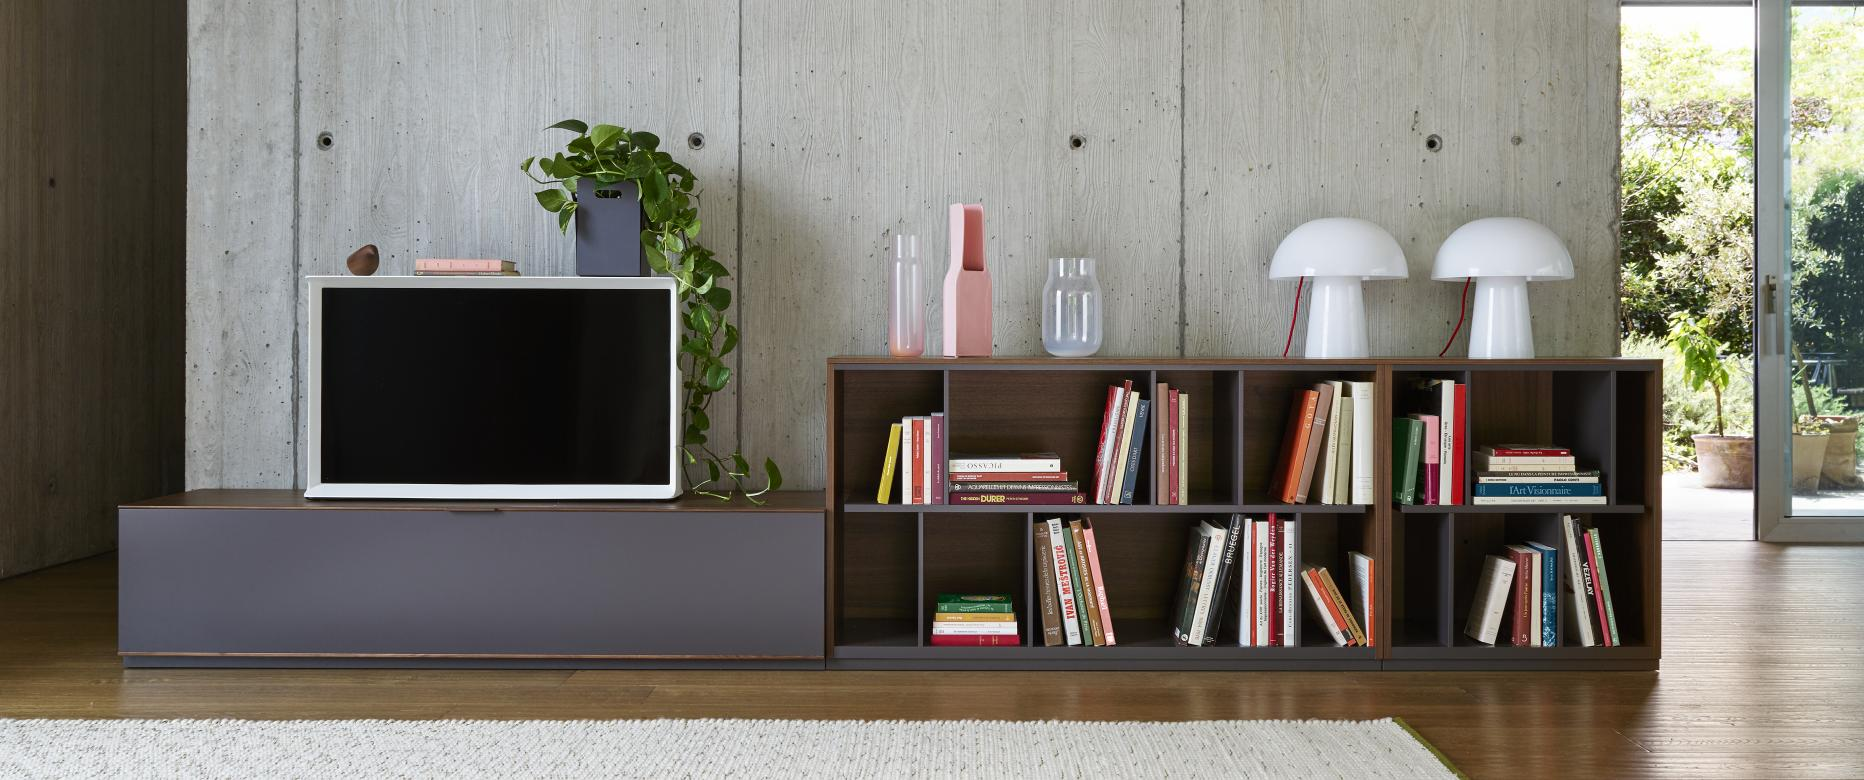 Store Furniture Online Largest